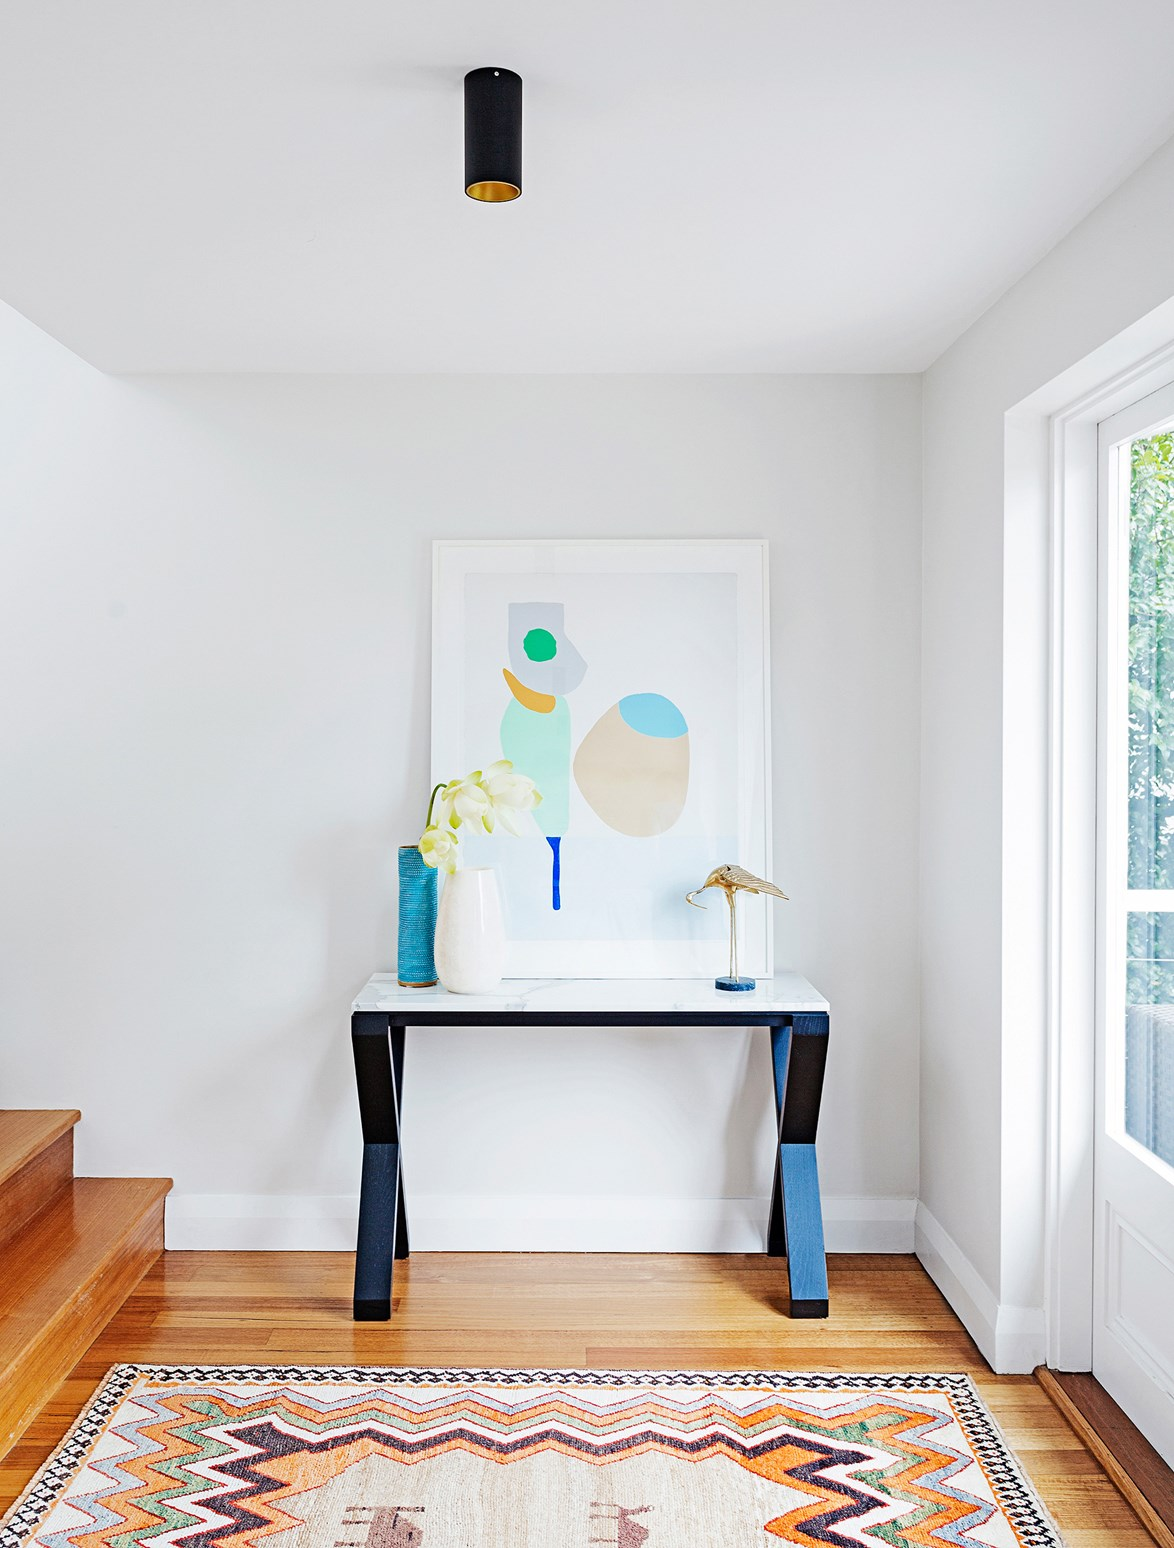 "A carefully considered display creates a warm welcome in the entryway of this [feminine Sydney home](https://www.homestolove.com.au/gallery-master-stroke-feminine-sydney-house-design-1-2021|target=""_blank""). *Photo:* Felix Forest"